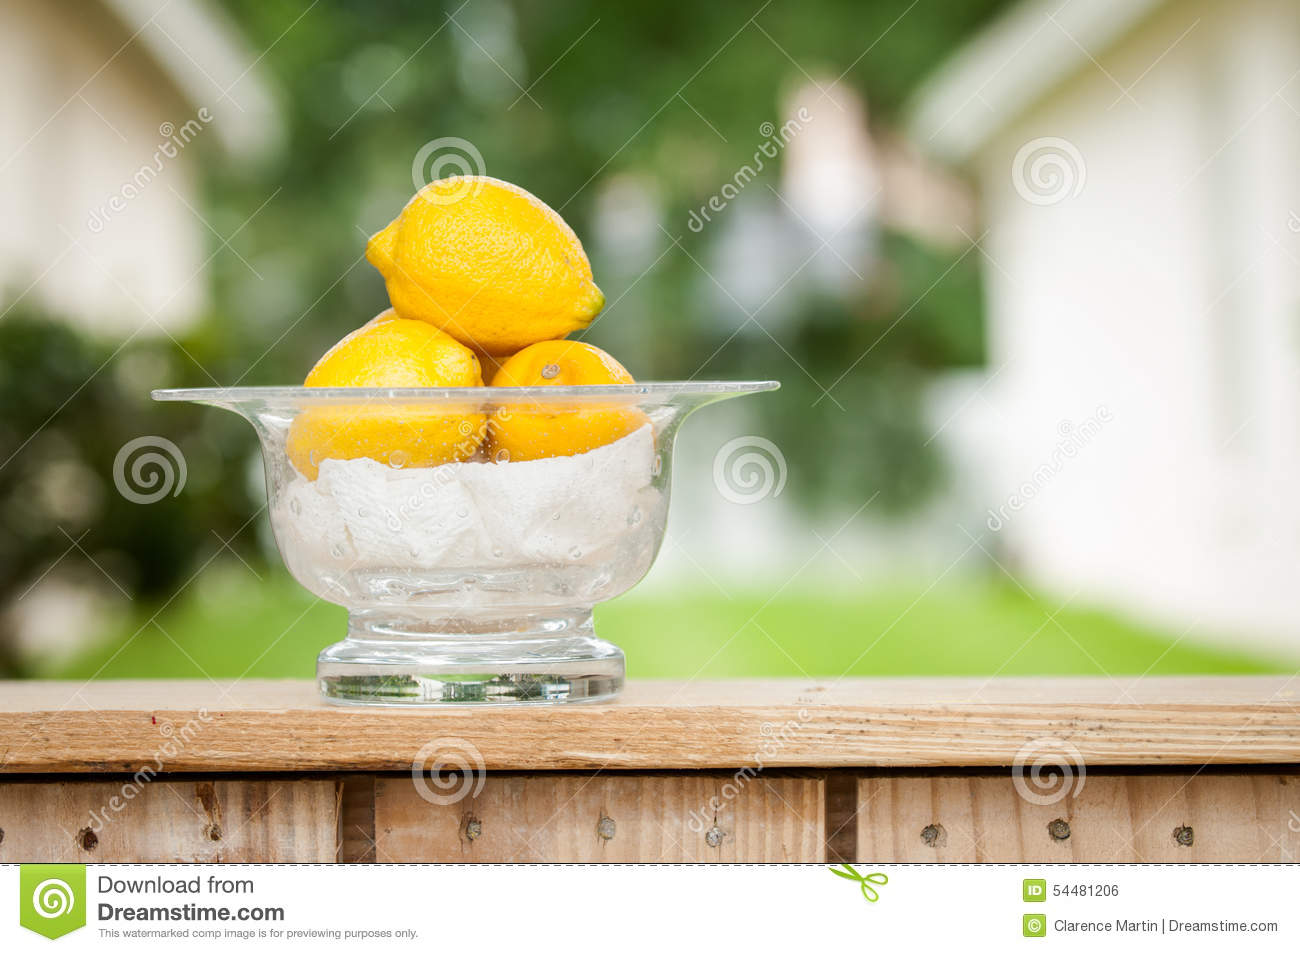 Lemons In A Glass Bowl At A Lemonade Stand Stock Photo ...